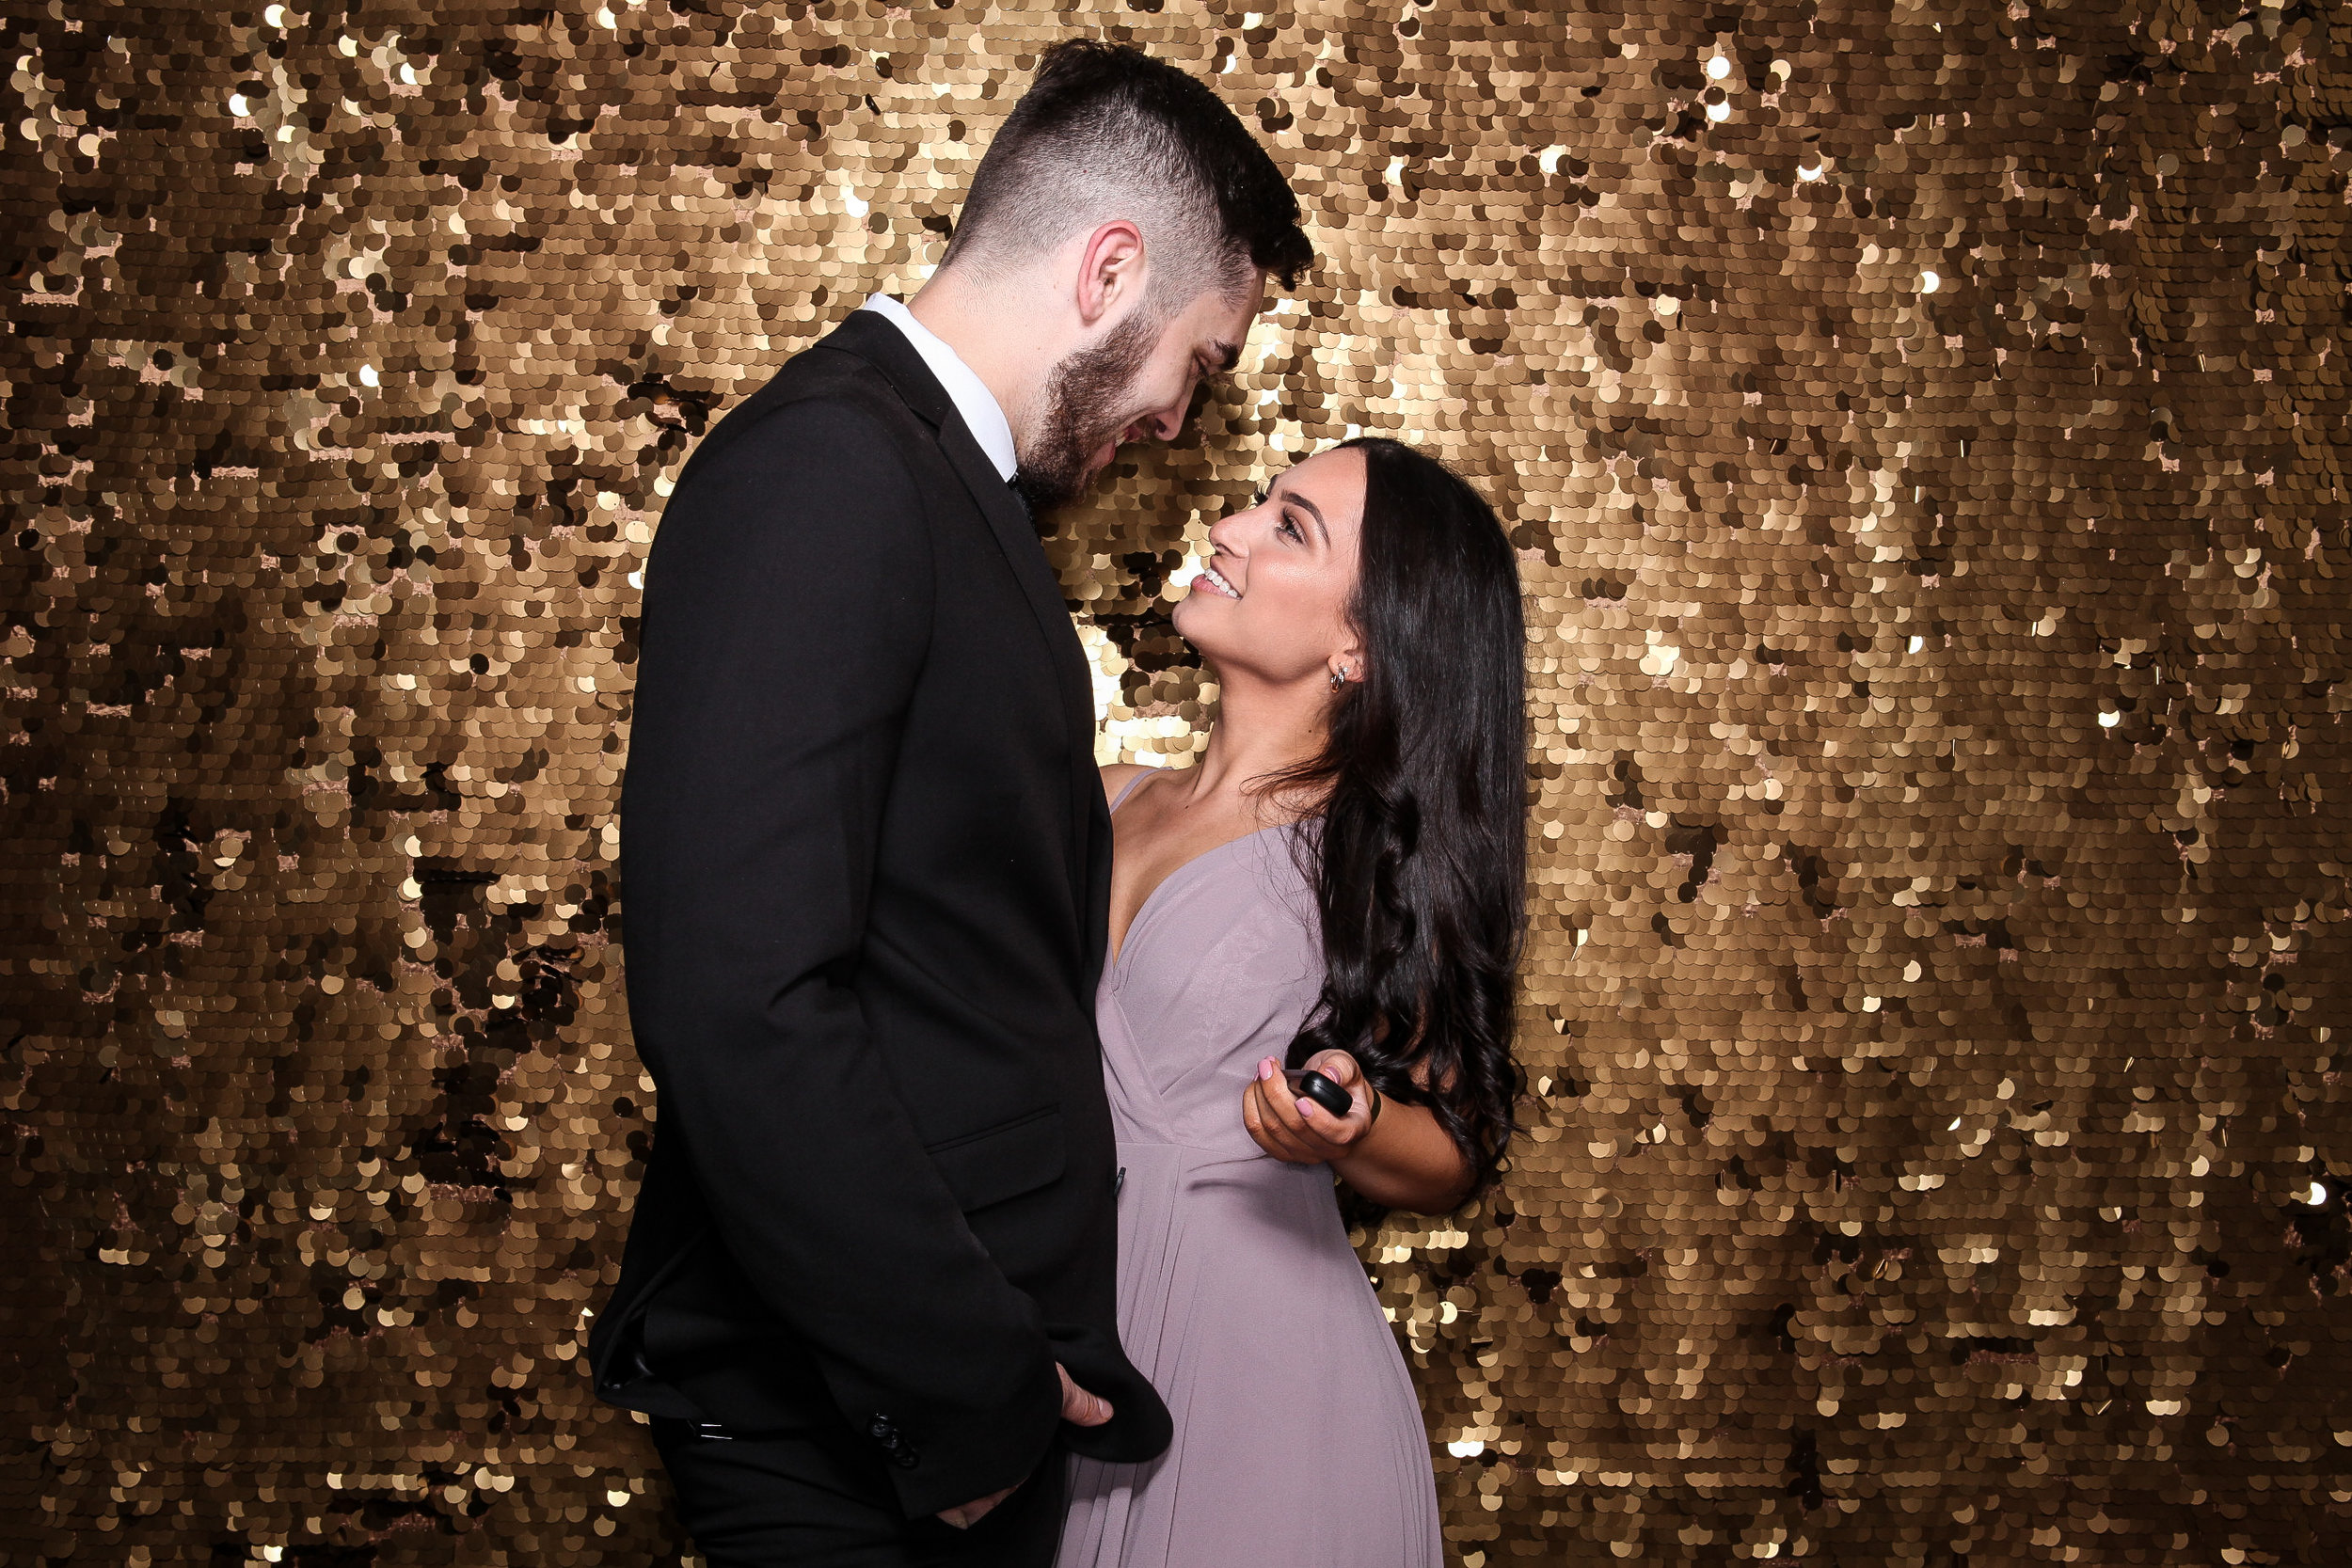 20190503_Adelphi_Senior_Formal-088.jpg